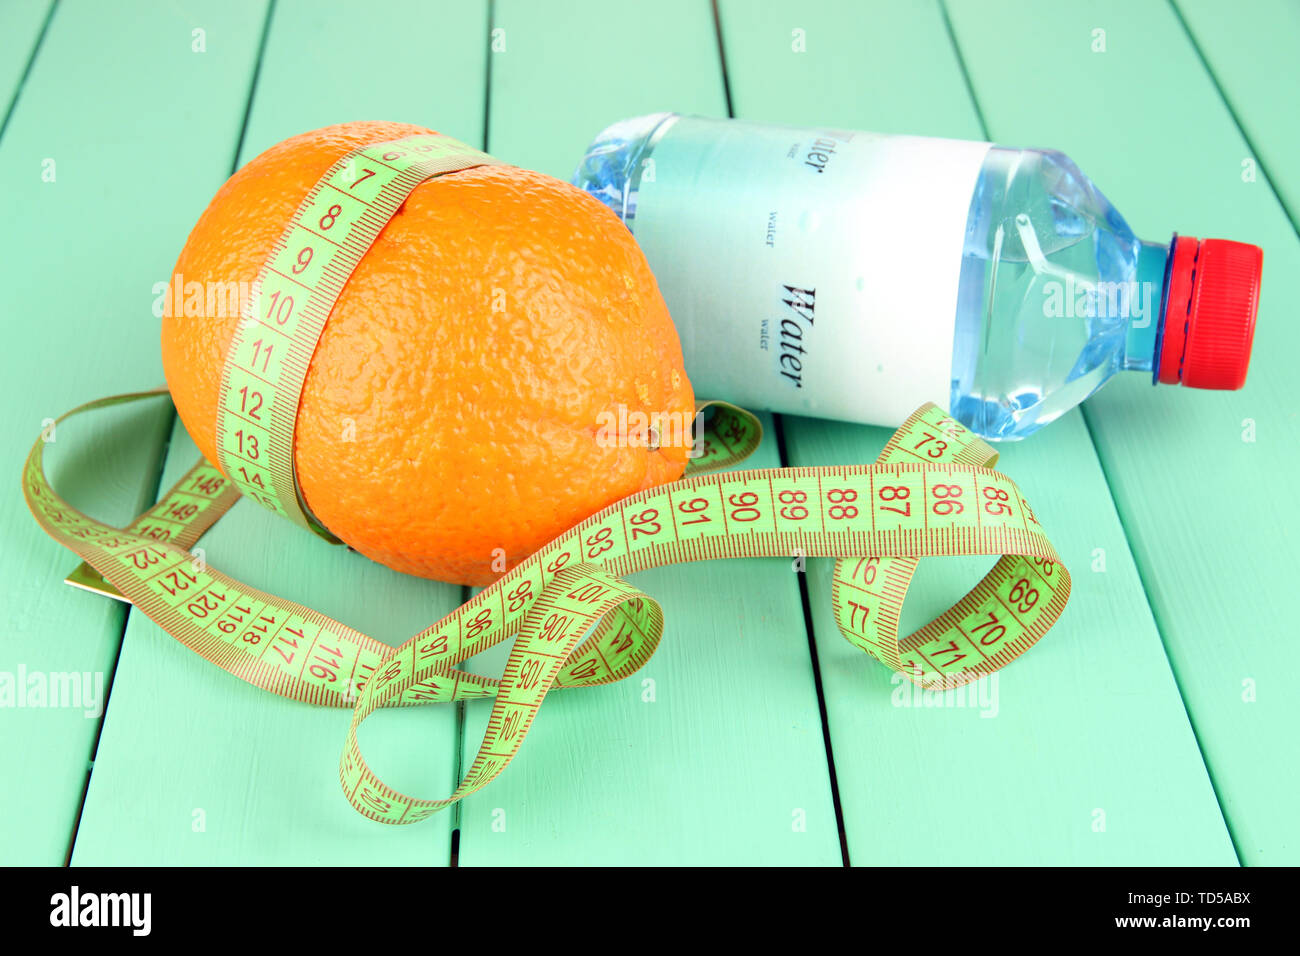 Orange with measuring tape, bottle of water, on wooden background - Stock Image